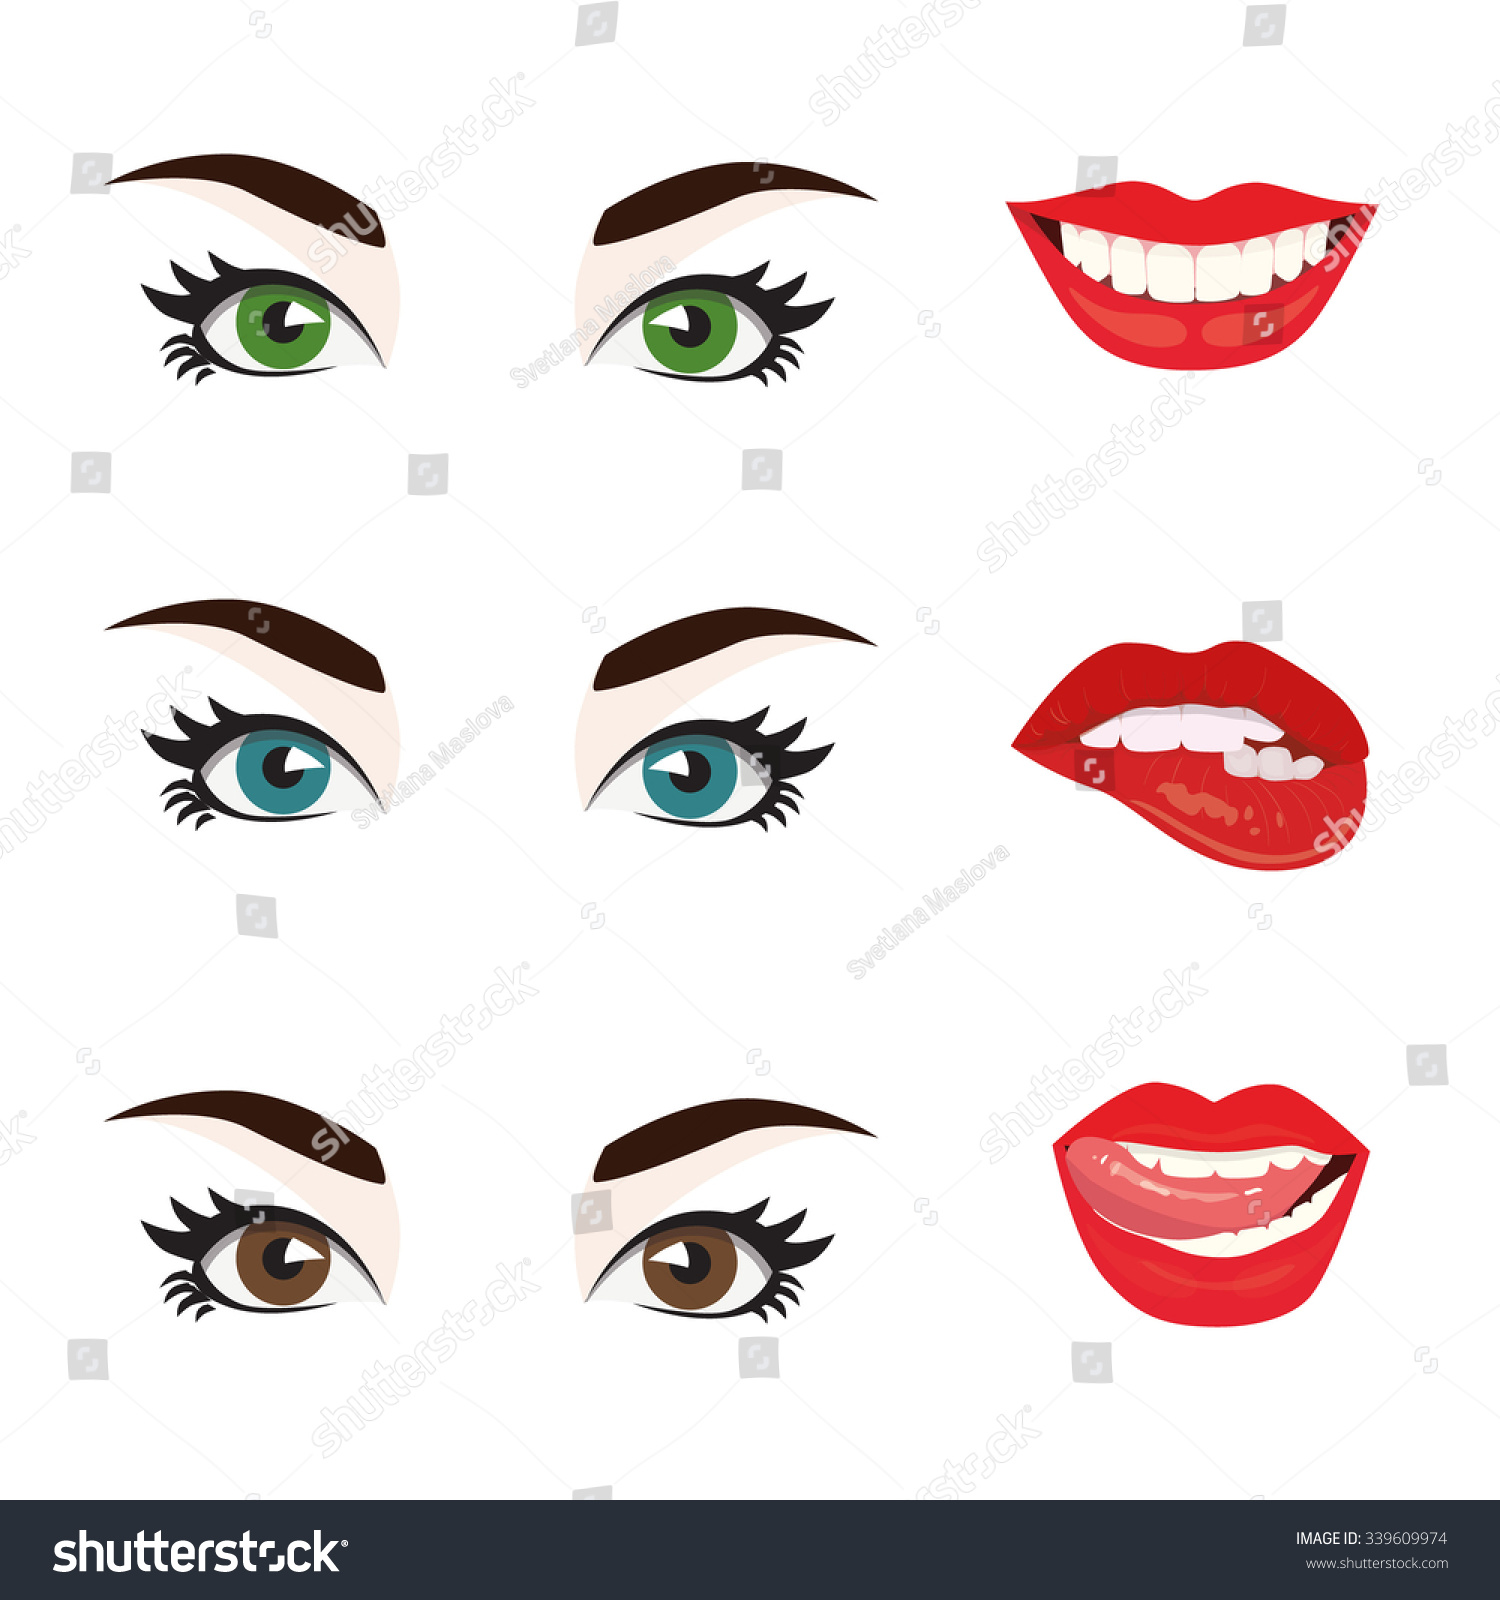 Female Lips With A Smile. The Mouth With A Kiss. Vector ...